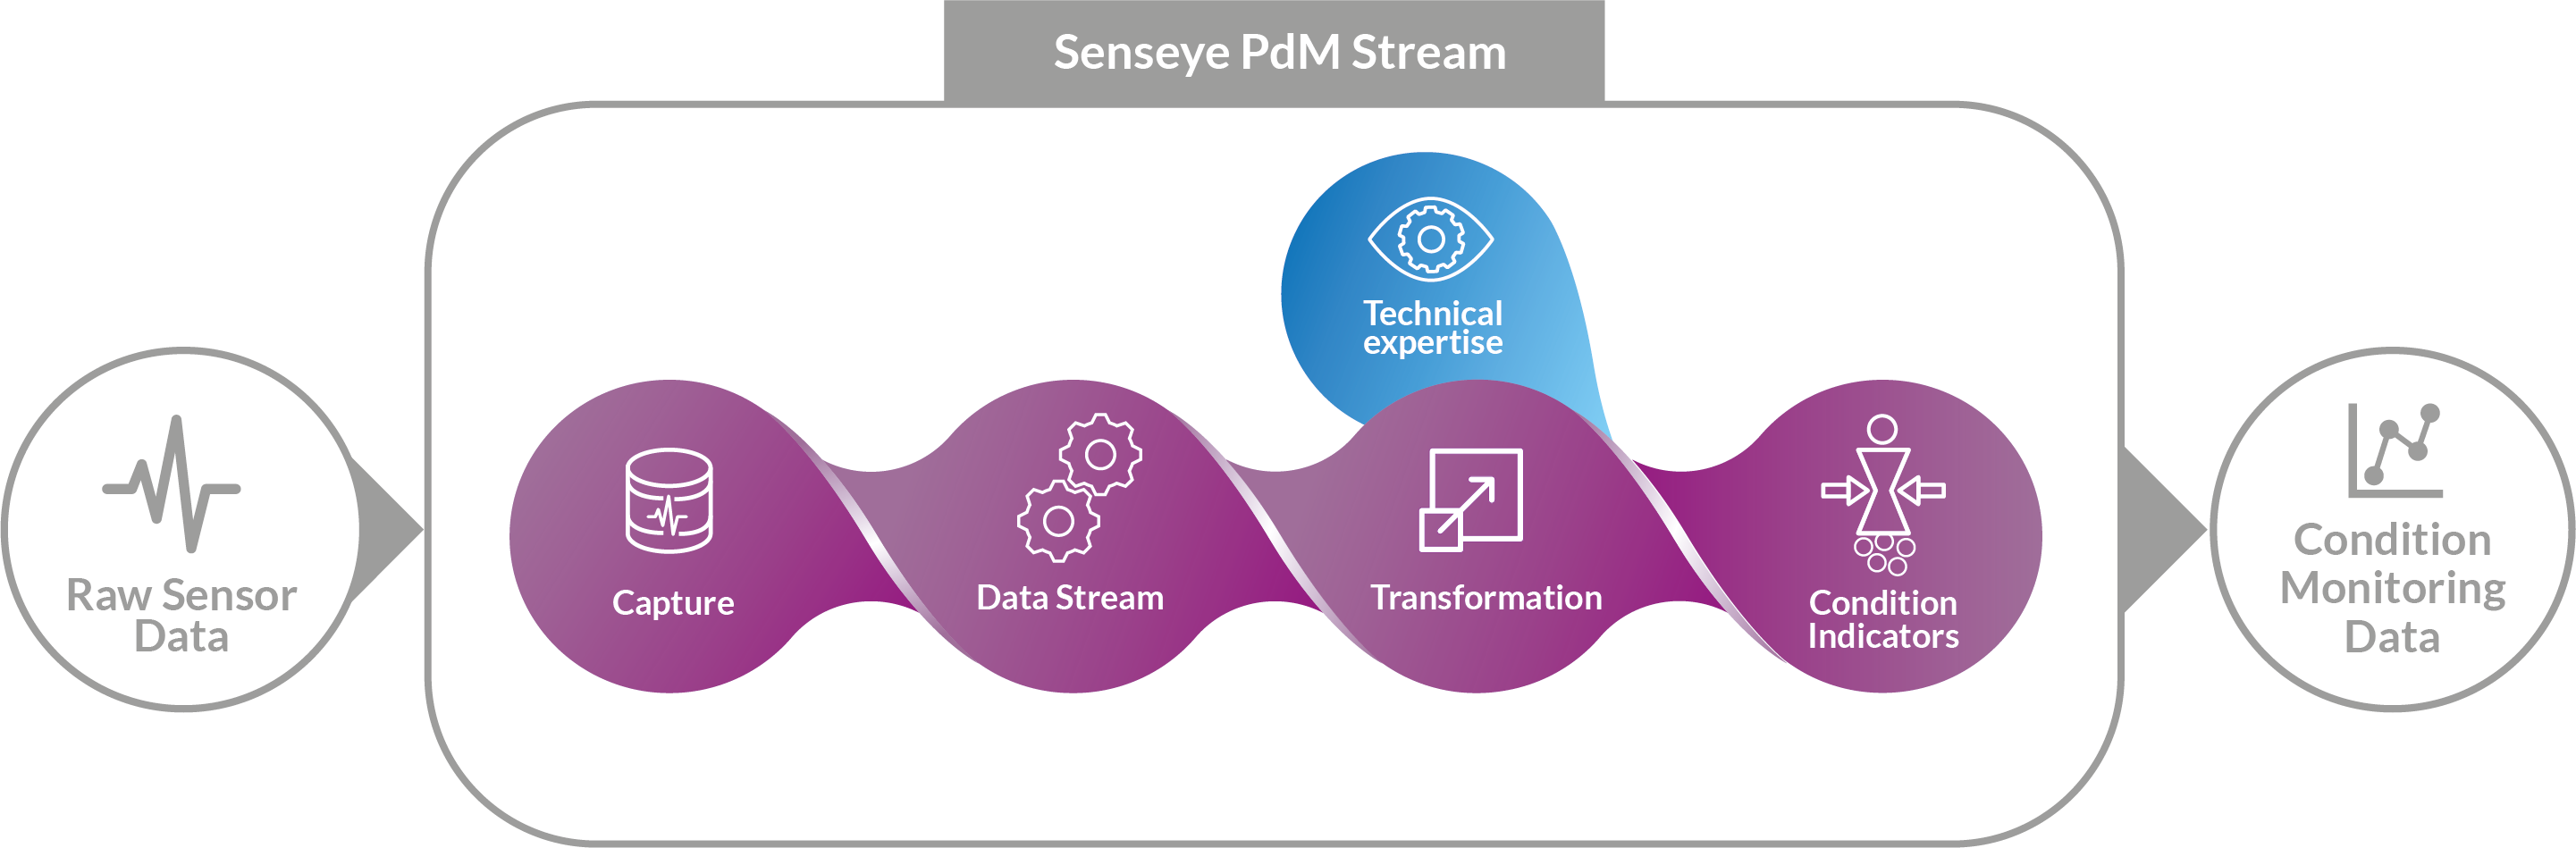 Senseye PdM Stream Diagram